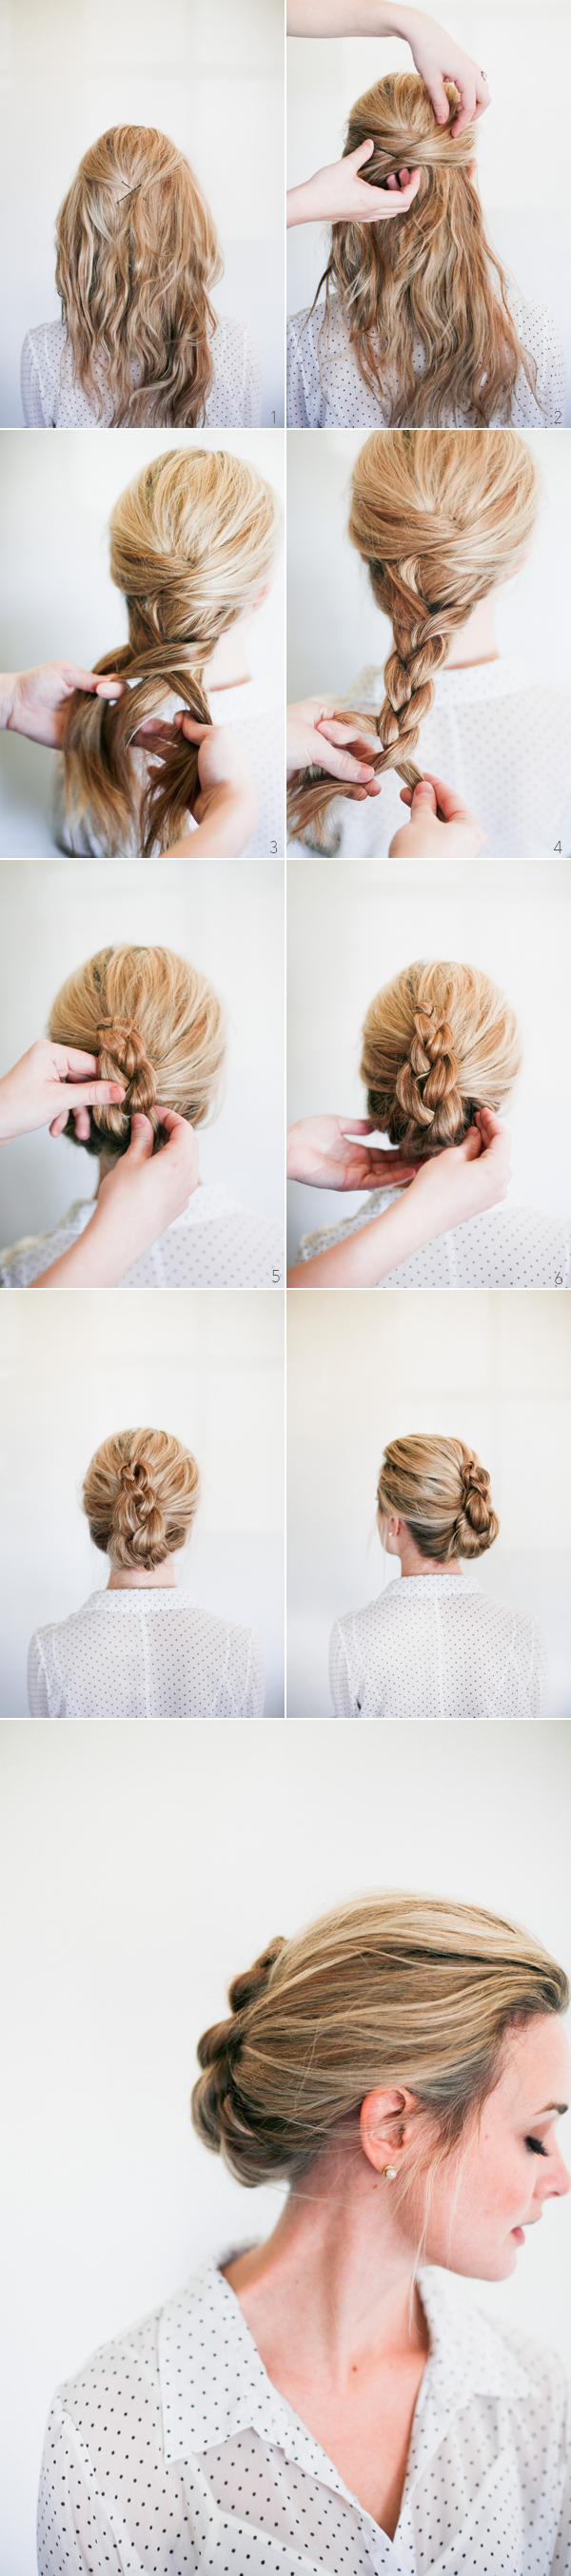 wedding hairstyles step by step instructions best